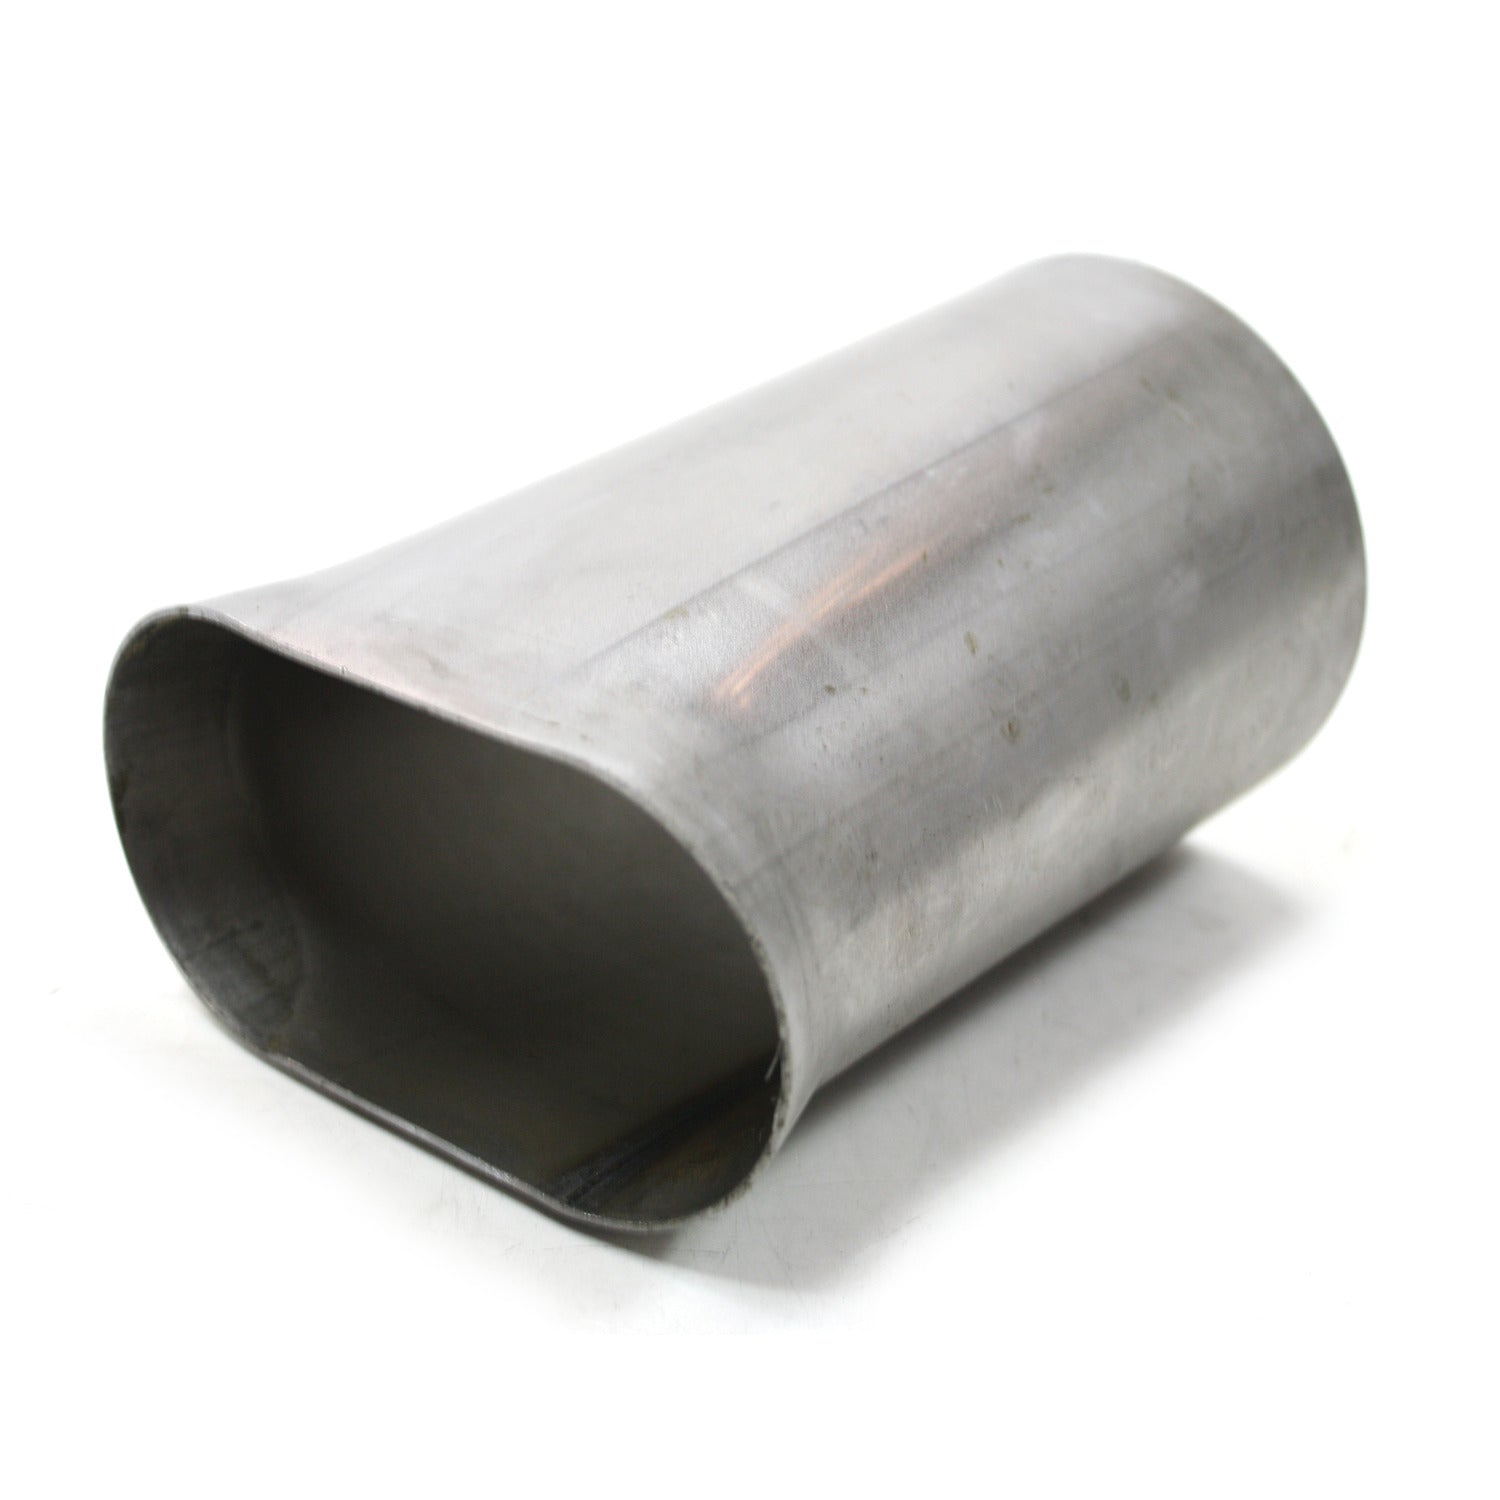 "Patriot Exhaust H7667 2-1 Formed Collector 2 1/2""x4""x6 1/2"""